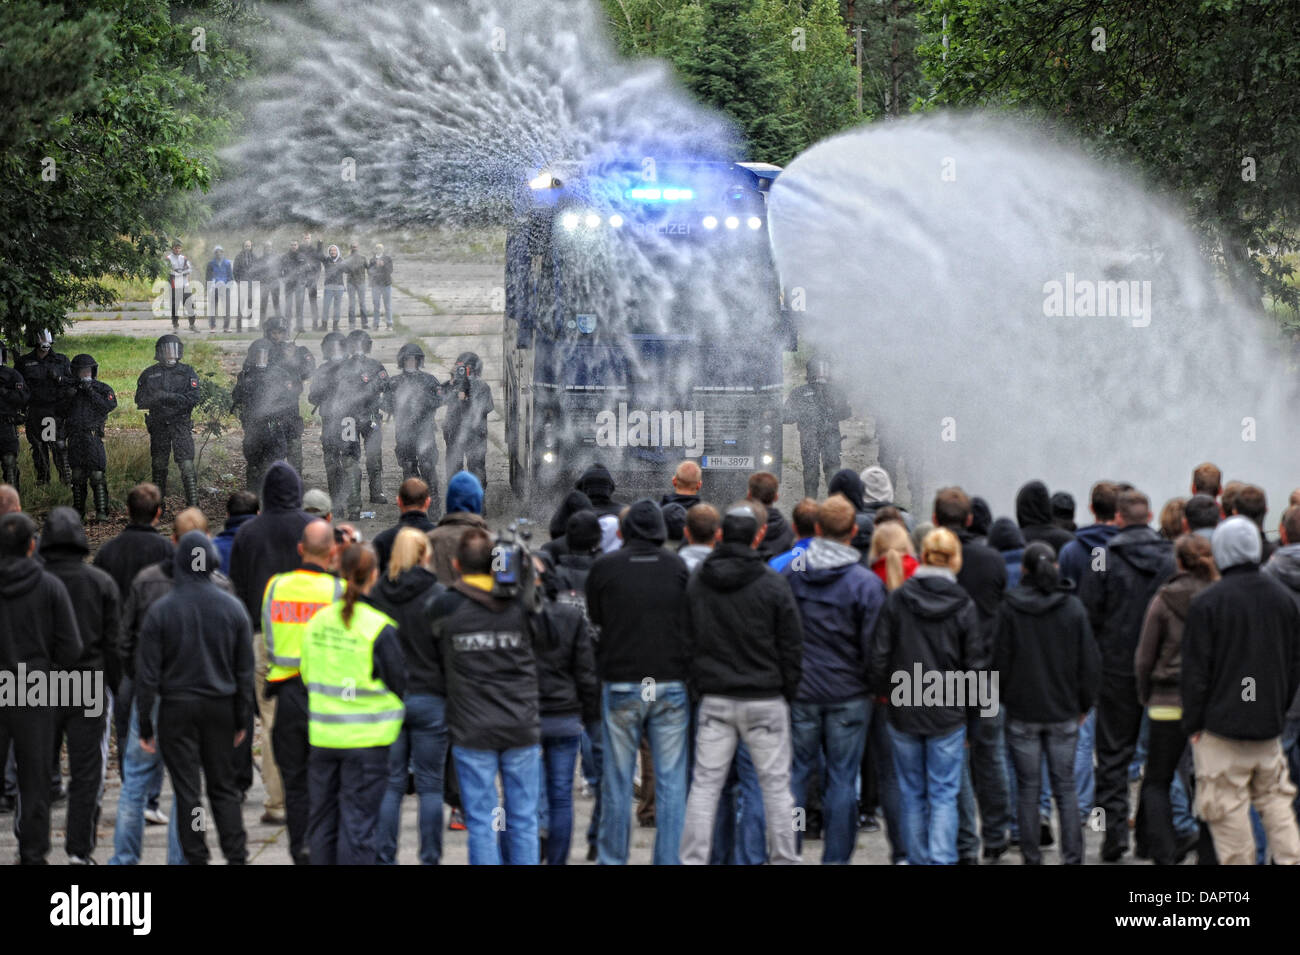 Police officers and demonstrators stand next to a water cannon vehicle during a drill inCelle,Germany, - Stock Image